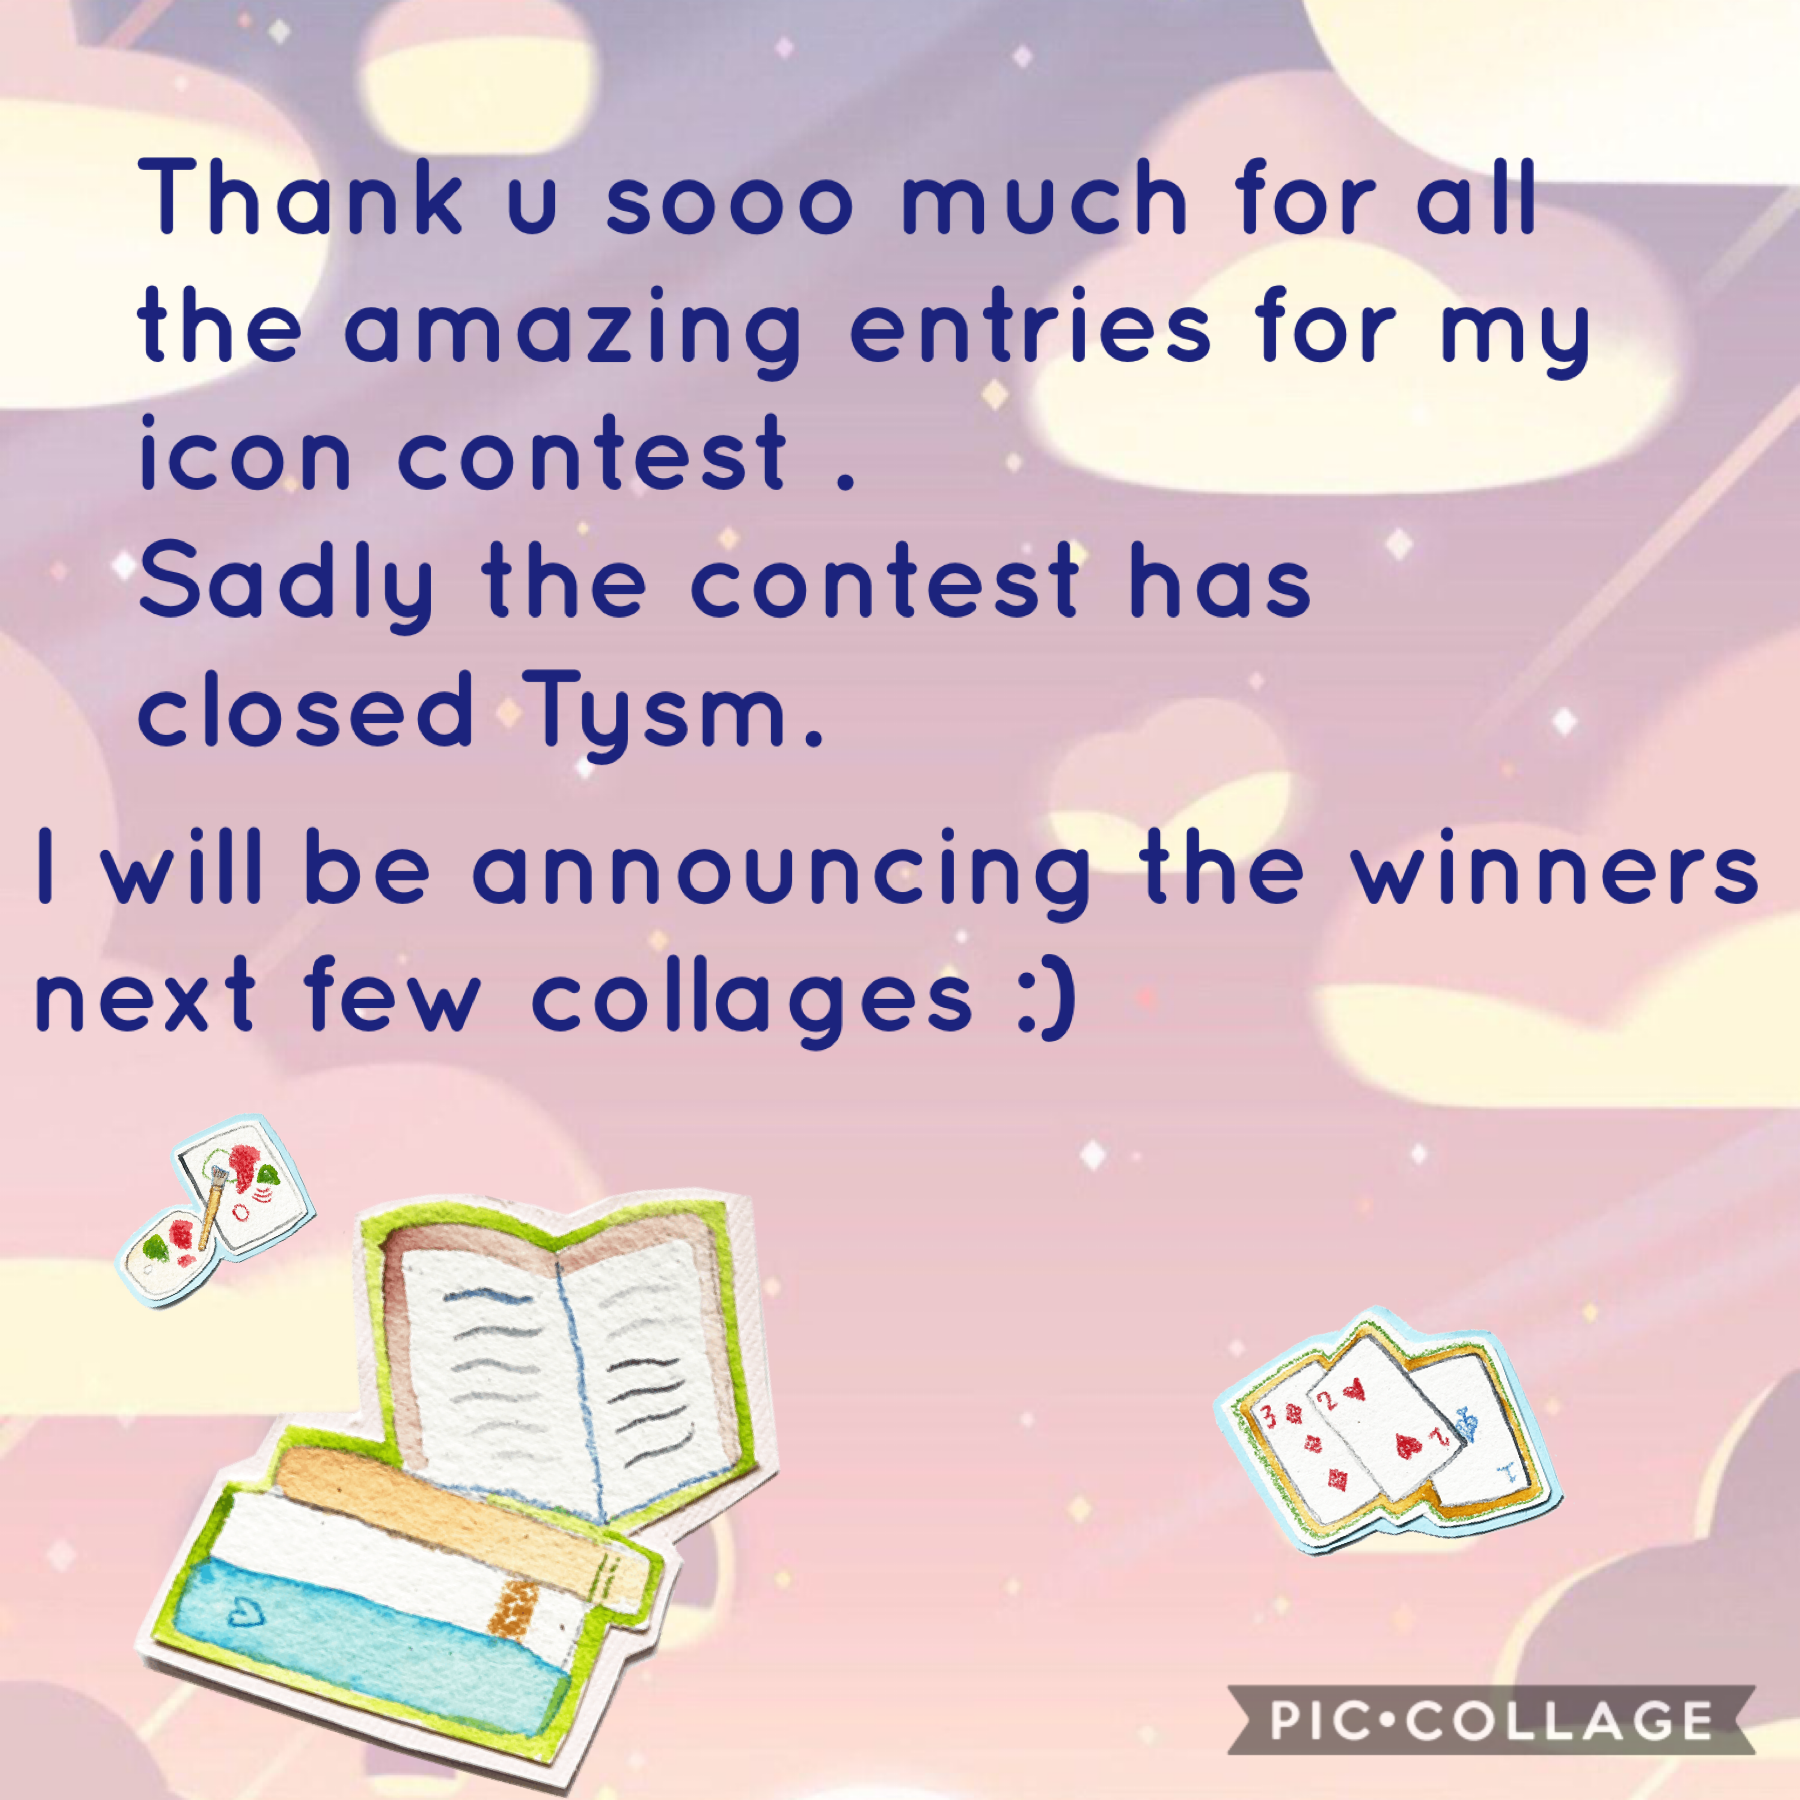 ✊🏻✊🏼✊🏽✊🏾✊🏿tap ✊🏿✊🏾✊🏽✊🏼✊🏻 I am soo grateful  Now I have to make the hard decision on the winners 😬😬😬